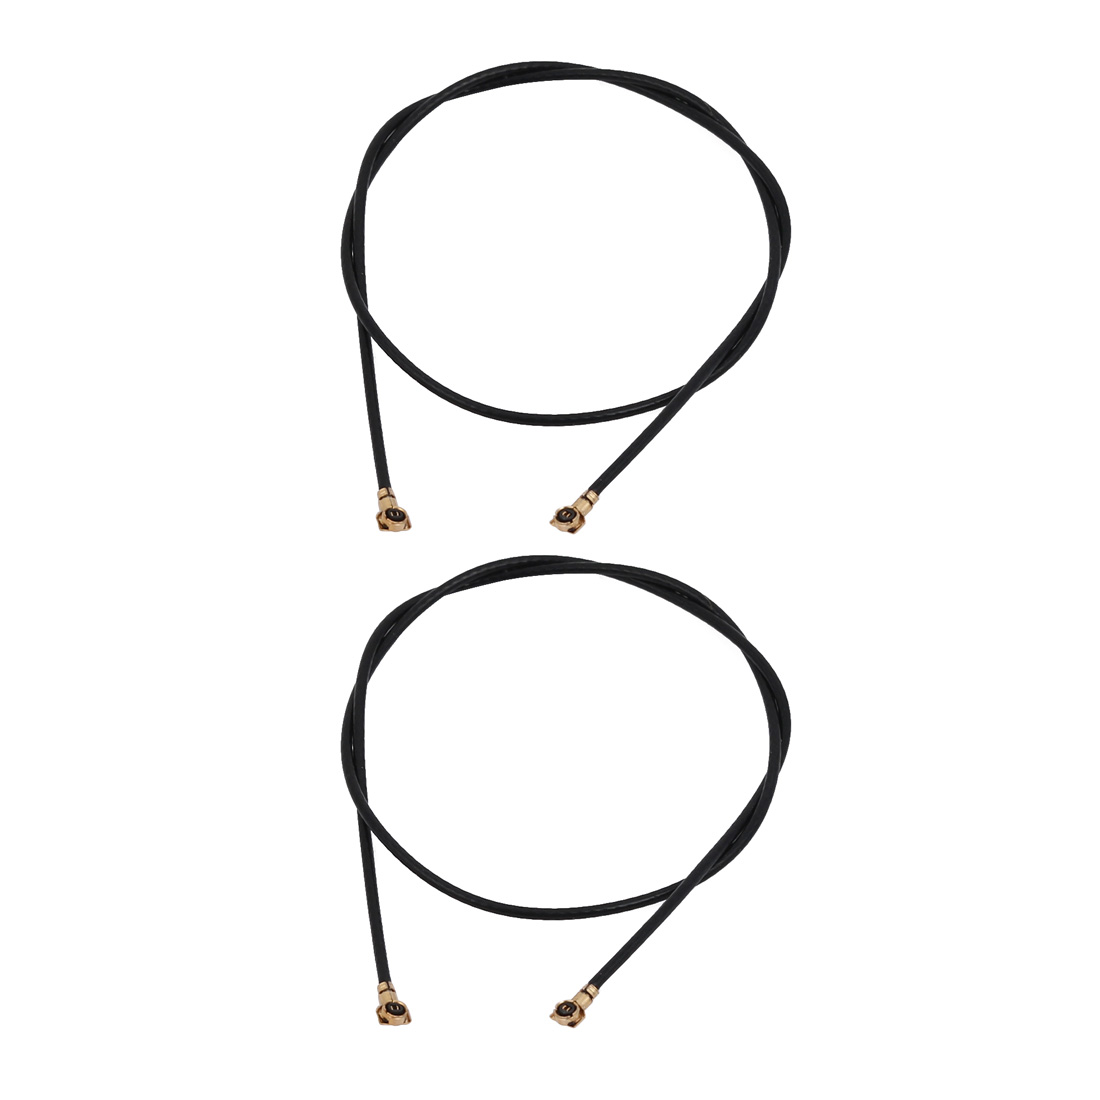 2Pcs Pigtail Antenna Cable IPEX to IPEX Connector Extension Cable 20cm Long